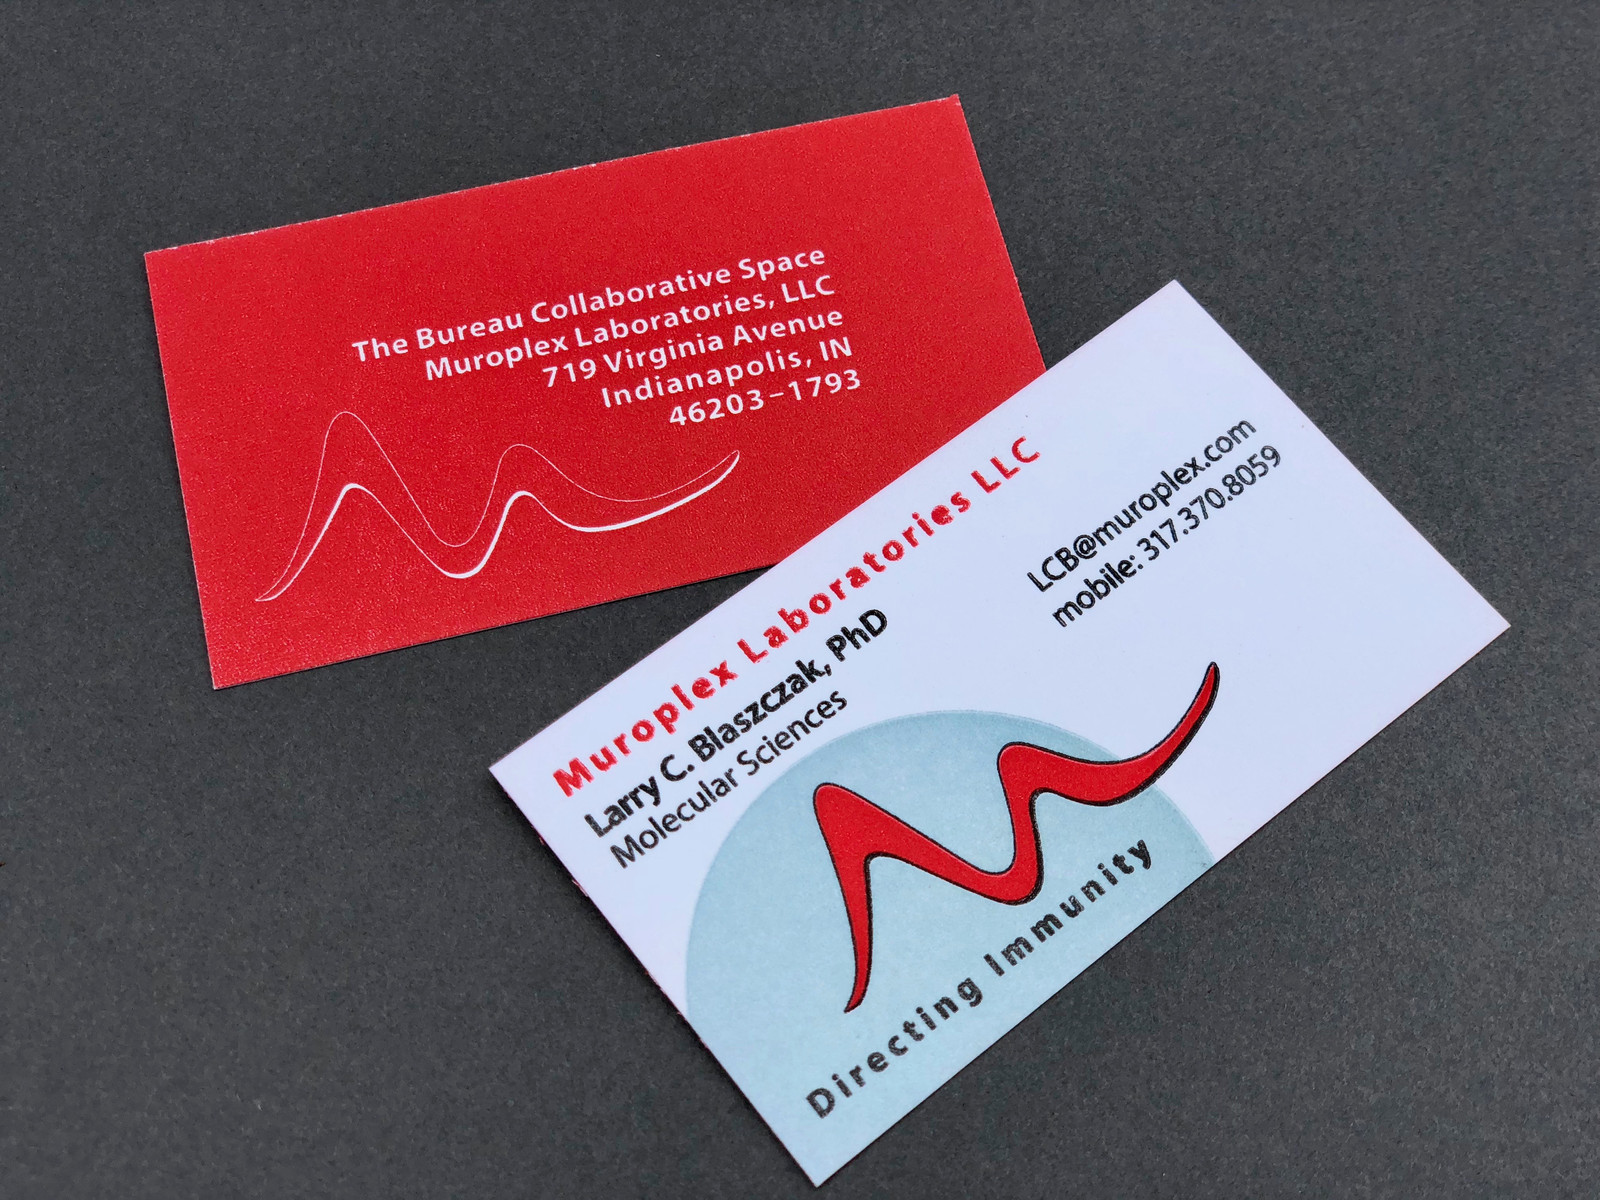 Design Bureau Llc Business Cards